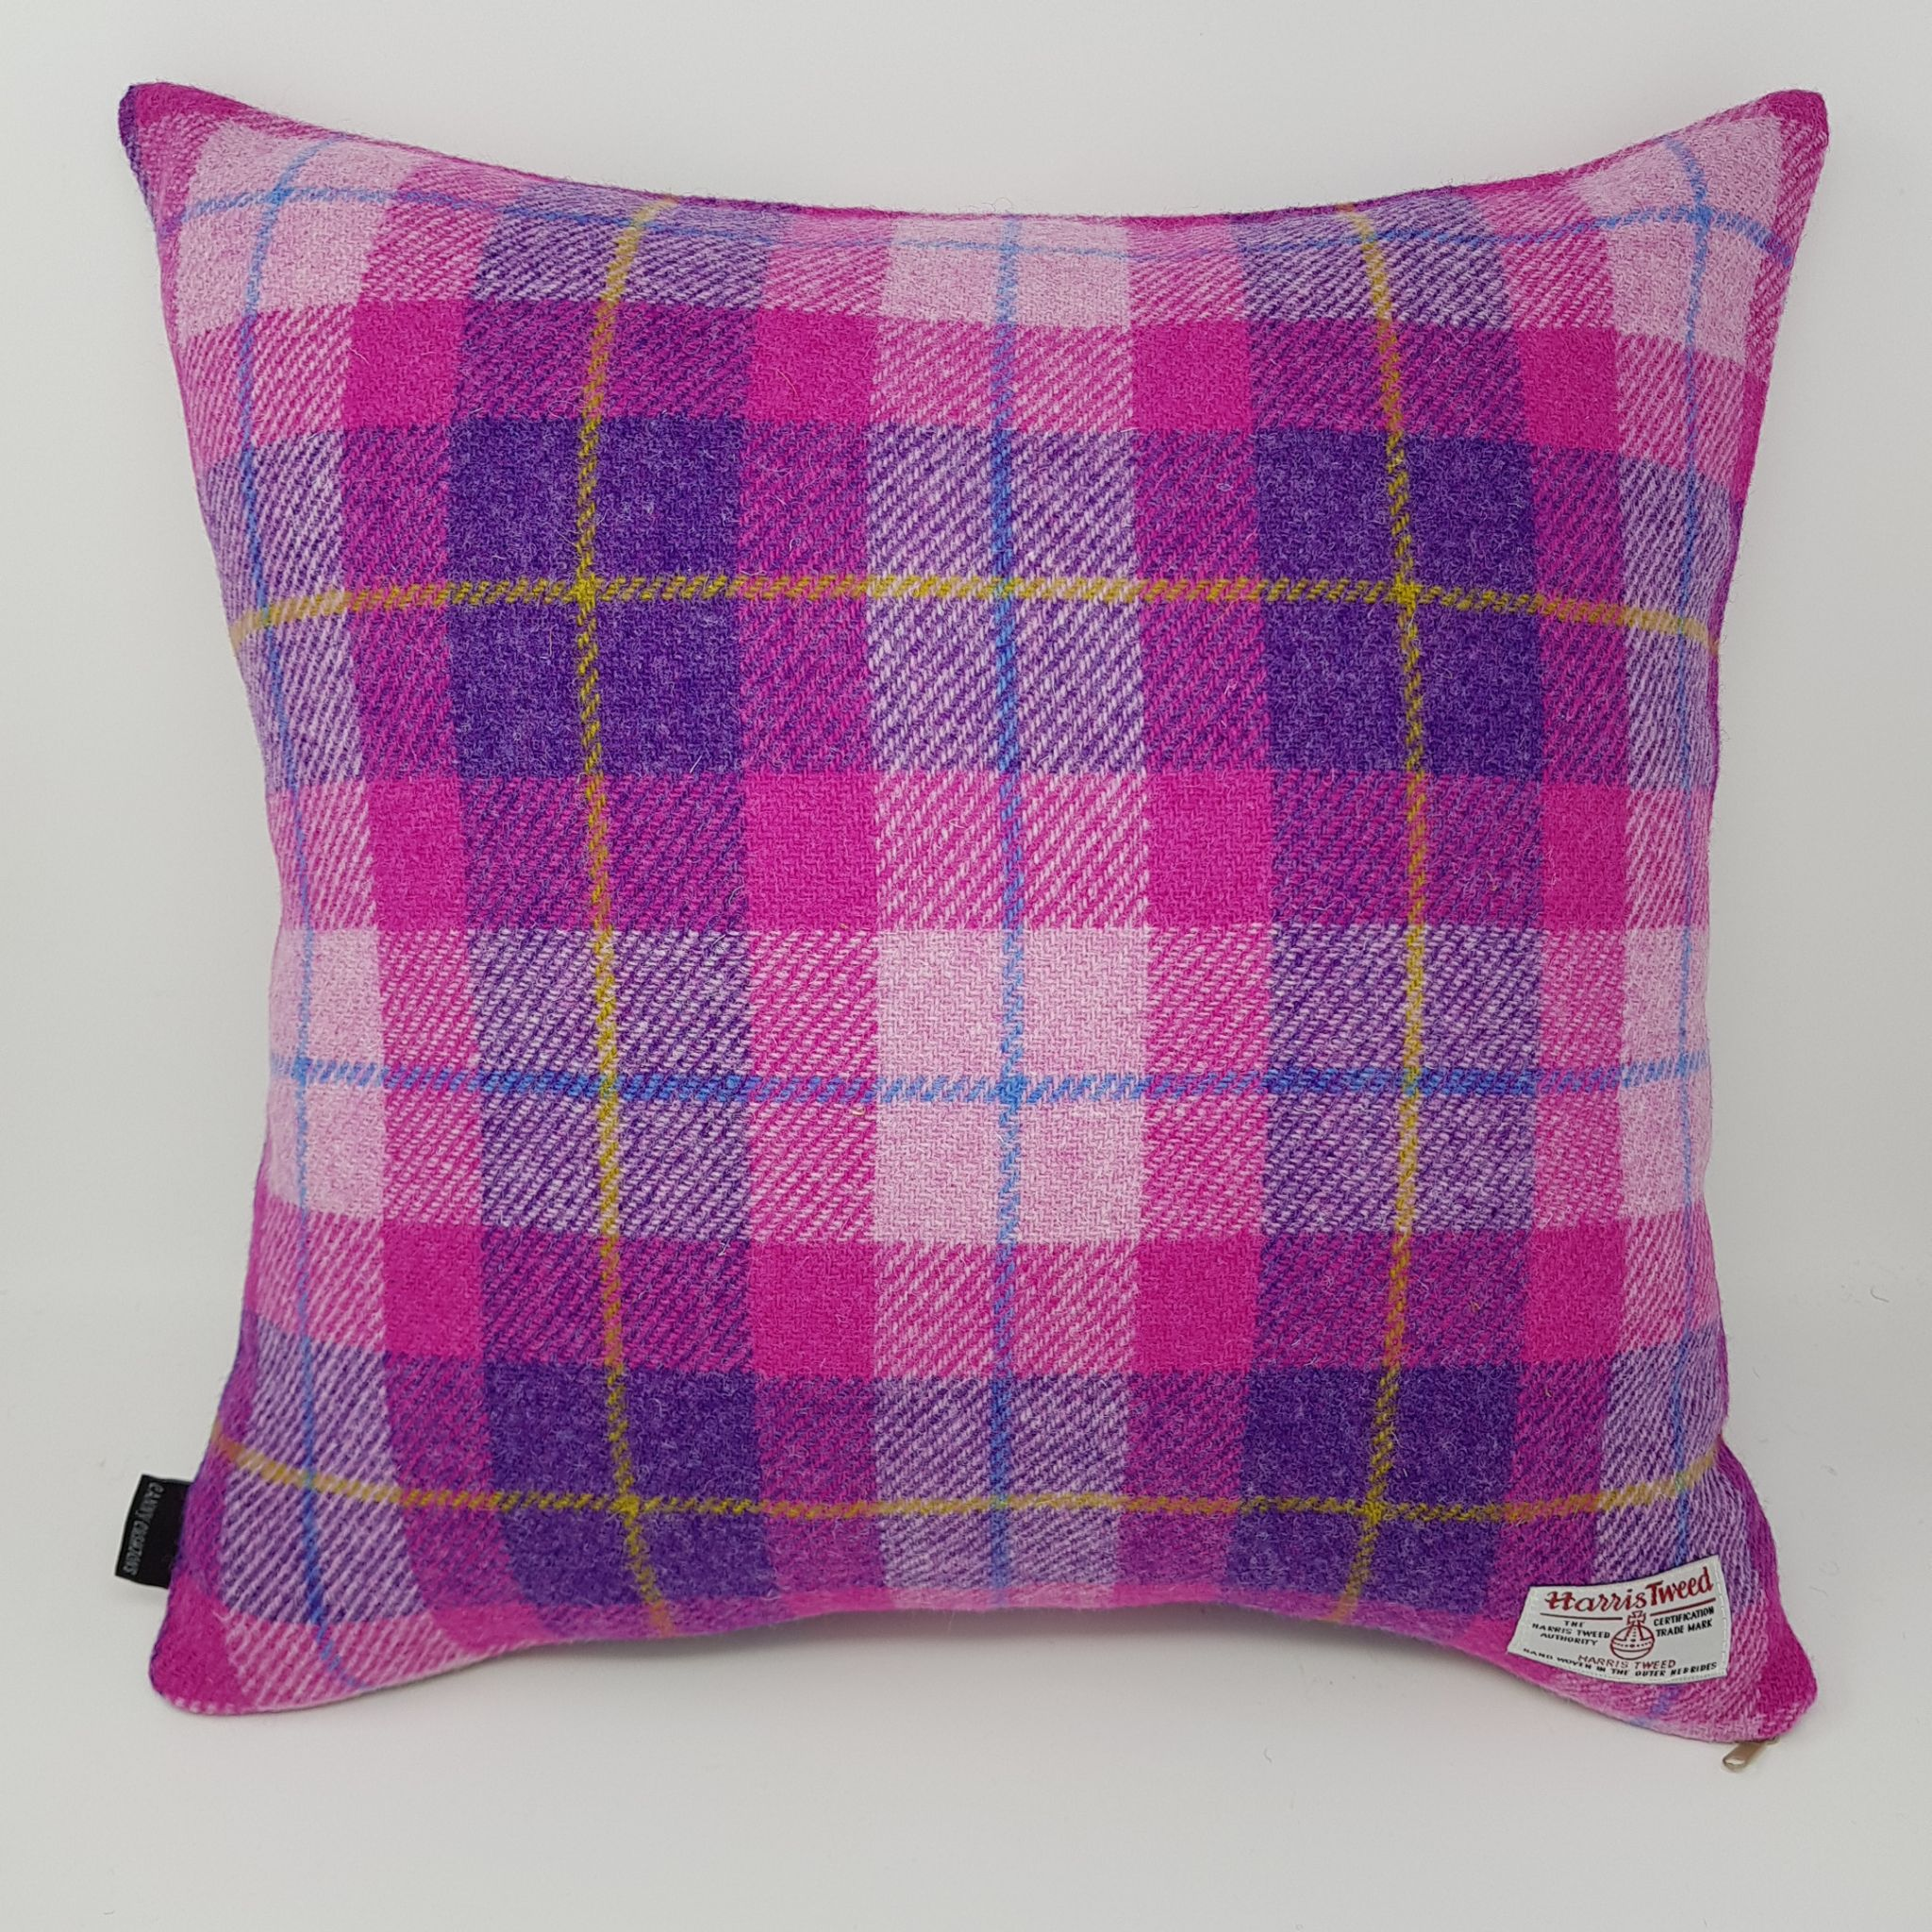 Cushion Covers made in Pink Gingham Check various sizes available